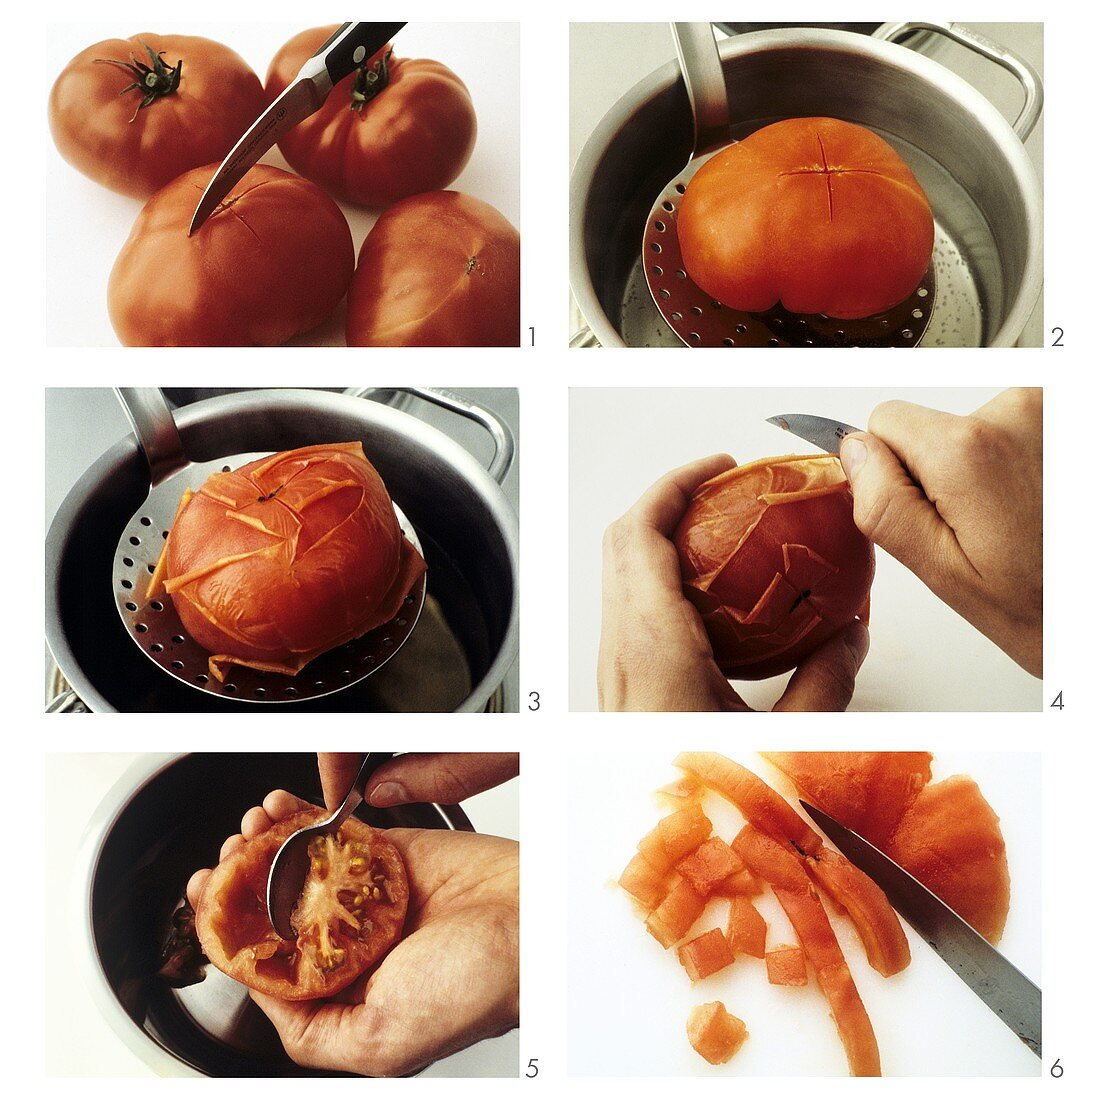 Skinning, deseeding and dicing a tomato